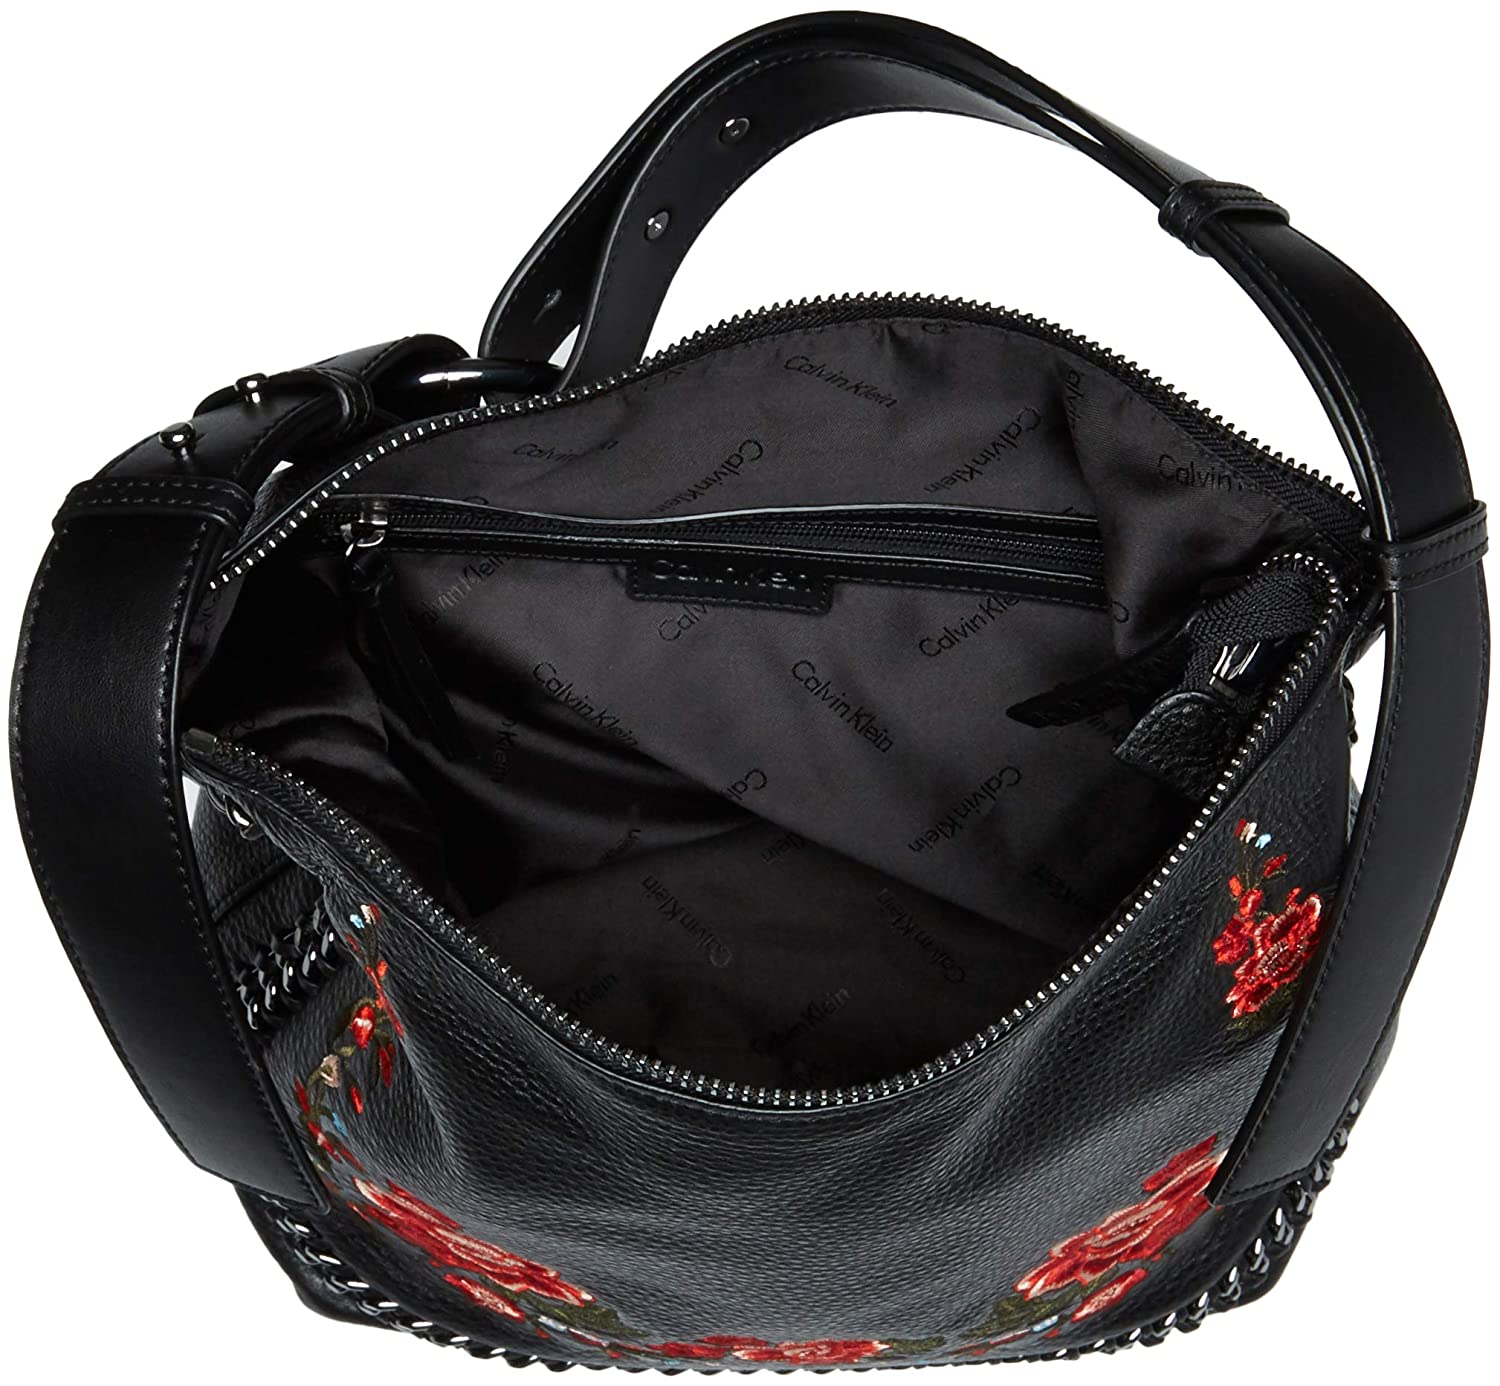 28a555267b89 Amazon.com  Calvin Klein womens Calvin Klein Liana Pebble Leather Floral  Embroidery Belted Top Zip Slouchy Hobo